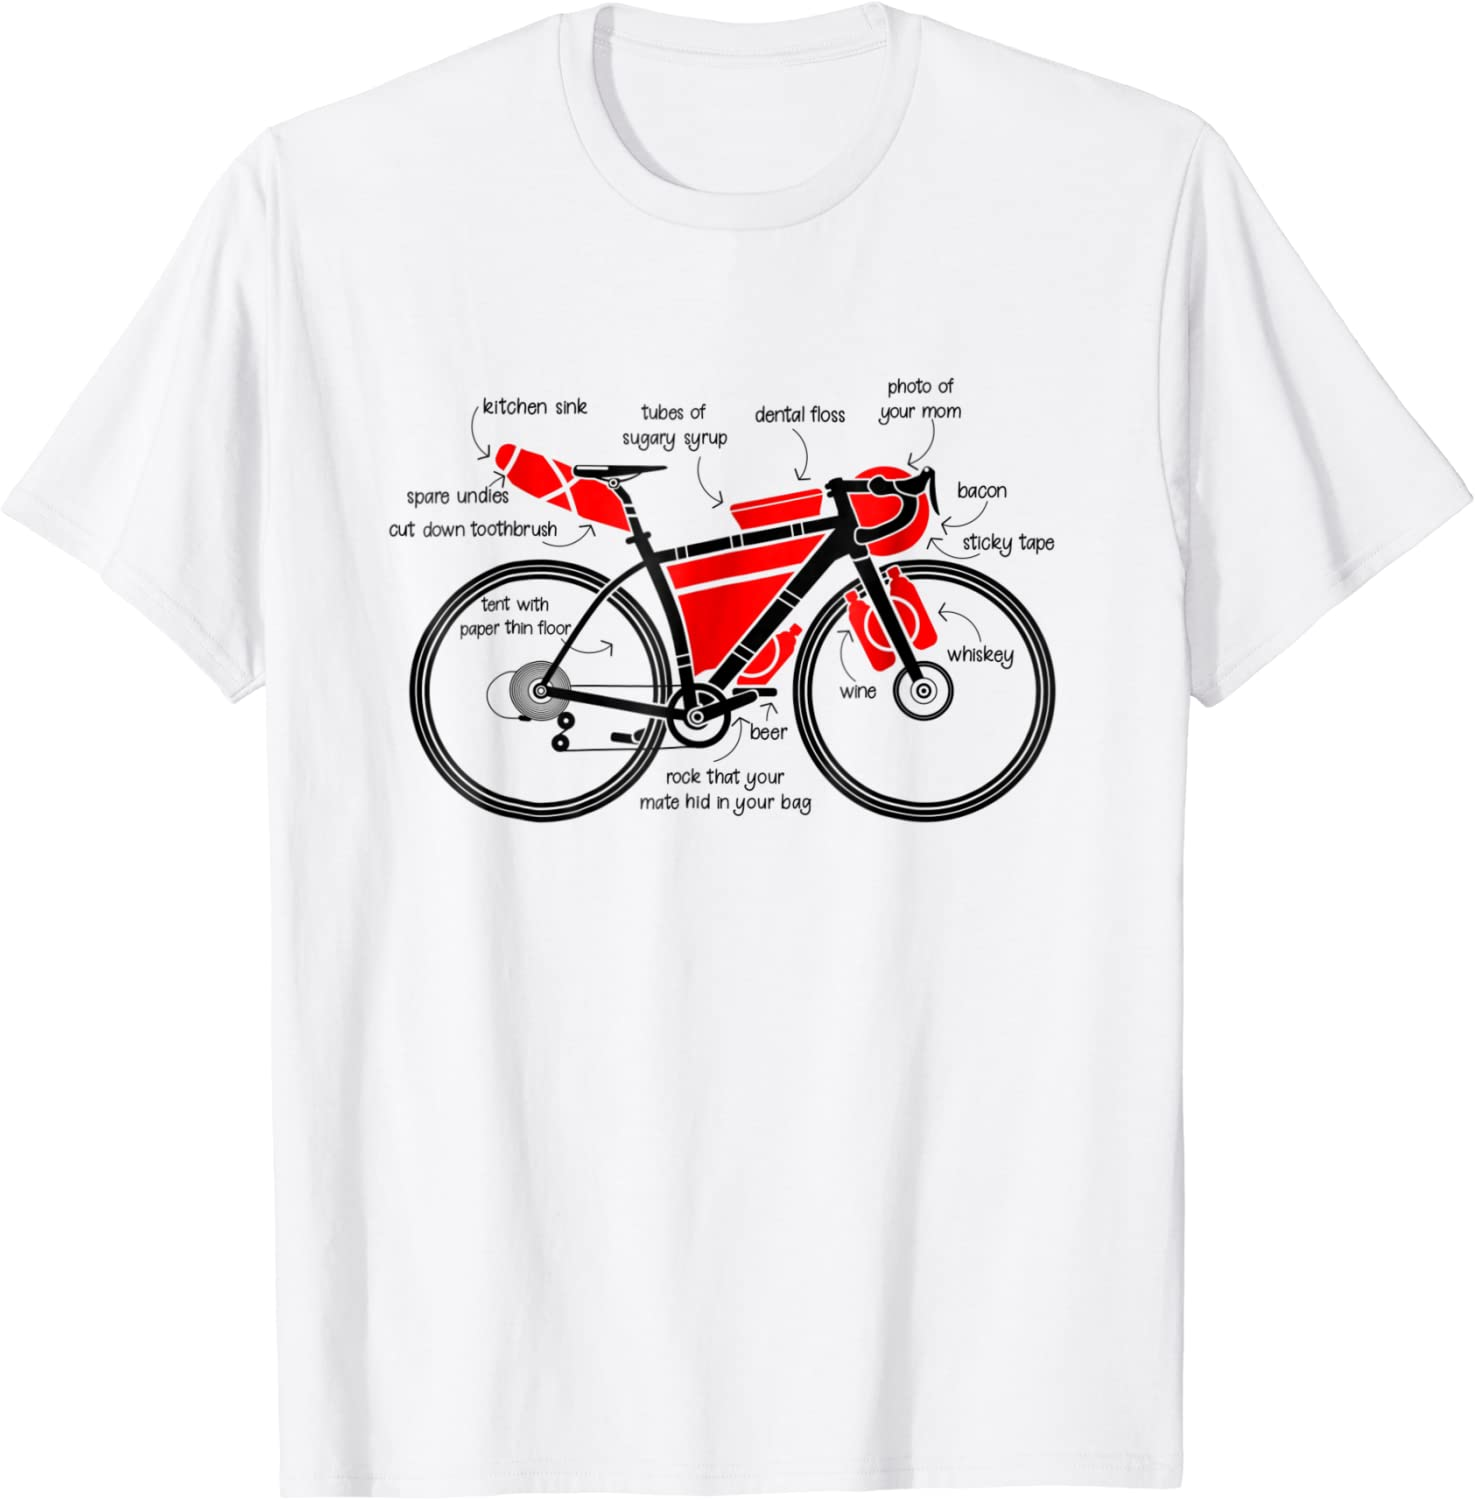 Graphic Tees for Men Vintage Graphic Tees For Women Vintage Funny Cycling Shirt Grafic Tshirt Vintage Retro Tee My First Steroid Cycle